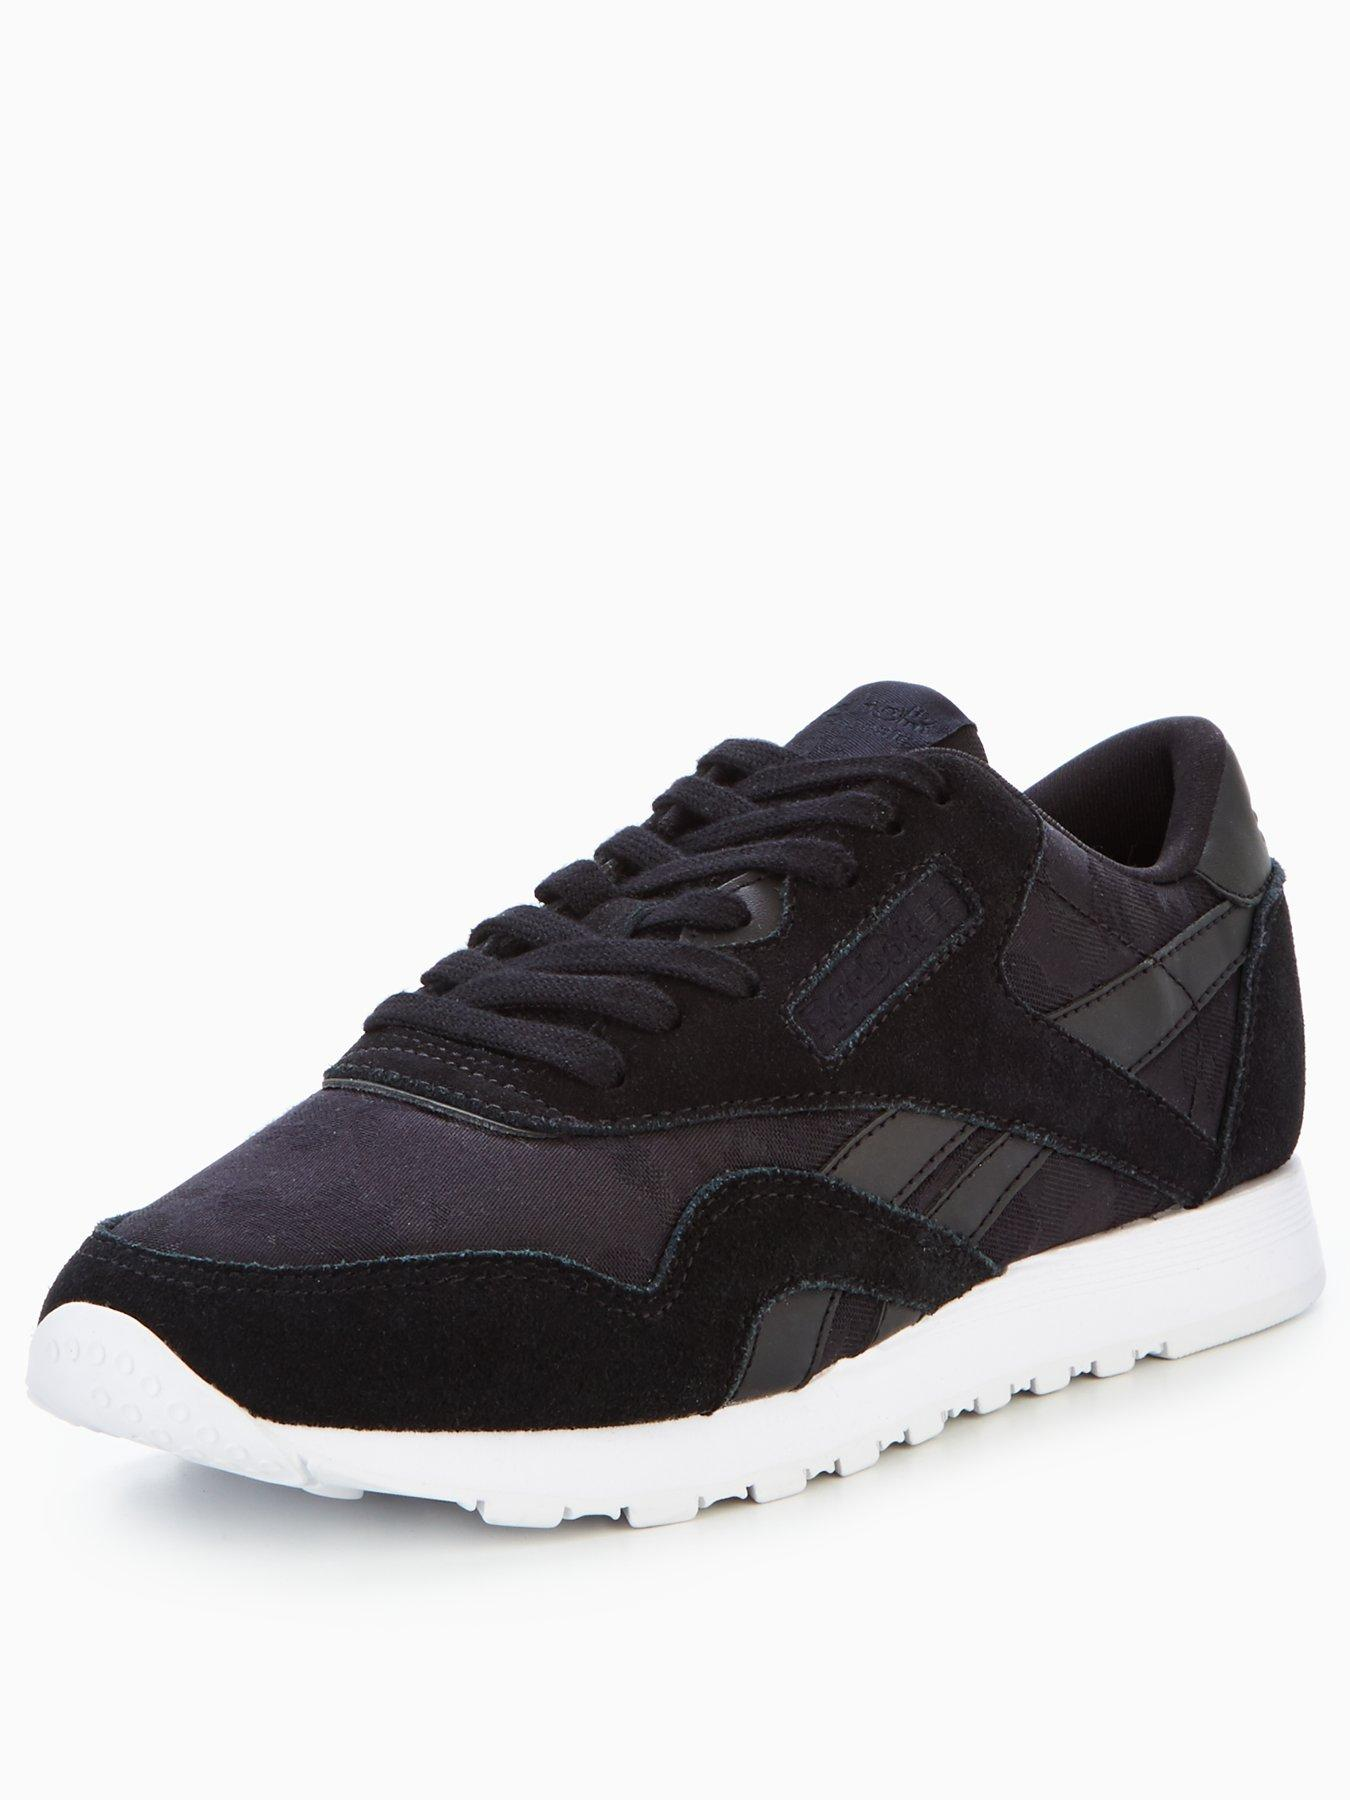 5d84aadfeaa6c8 reebok classic limited edition sale   OFF51% Discounted